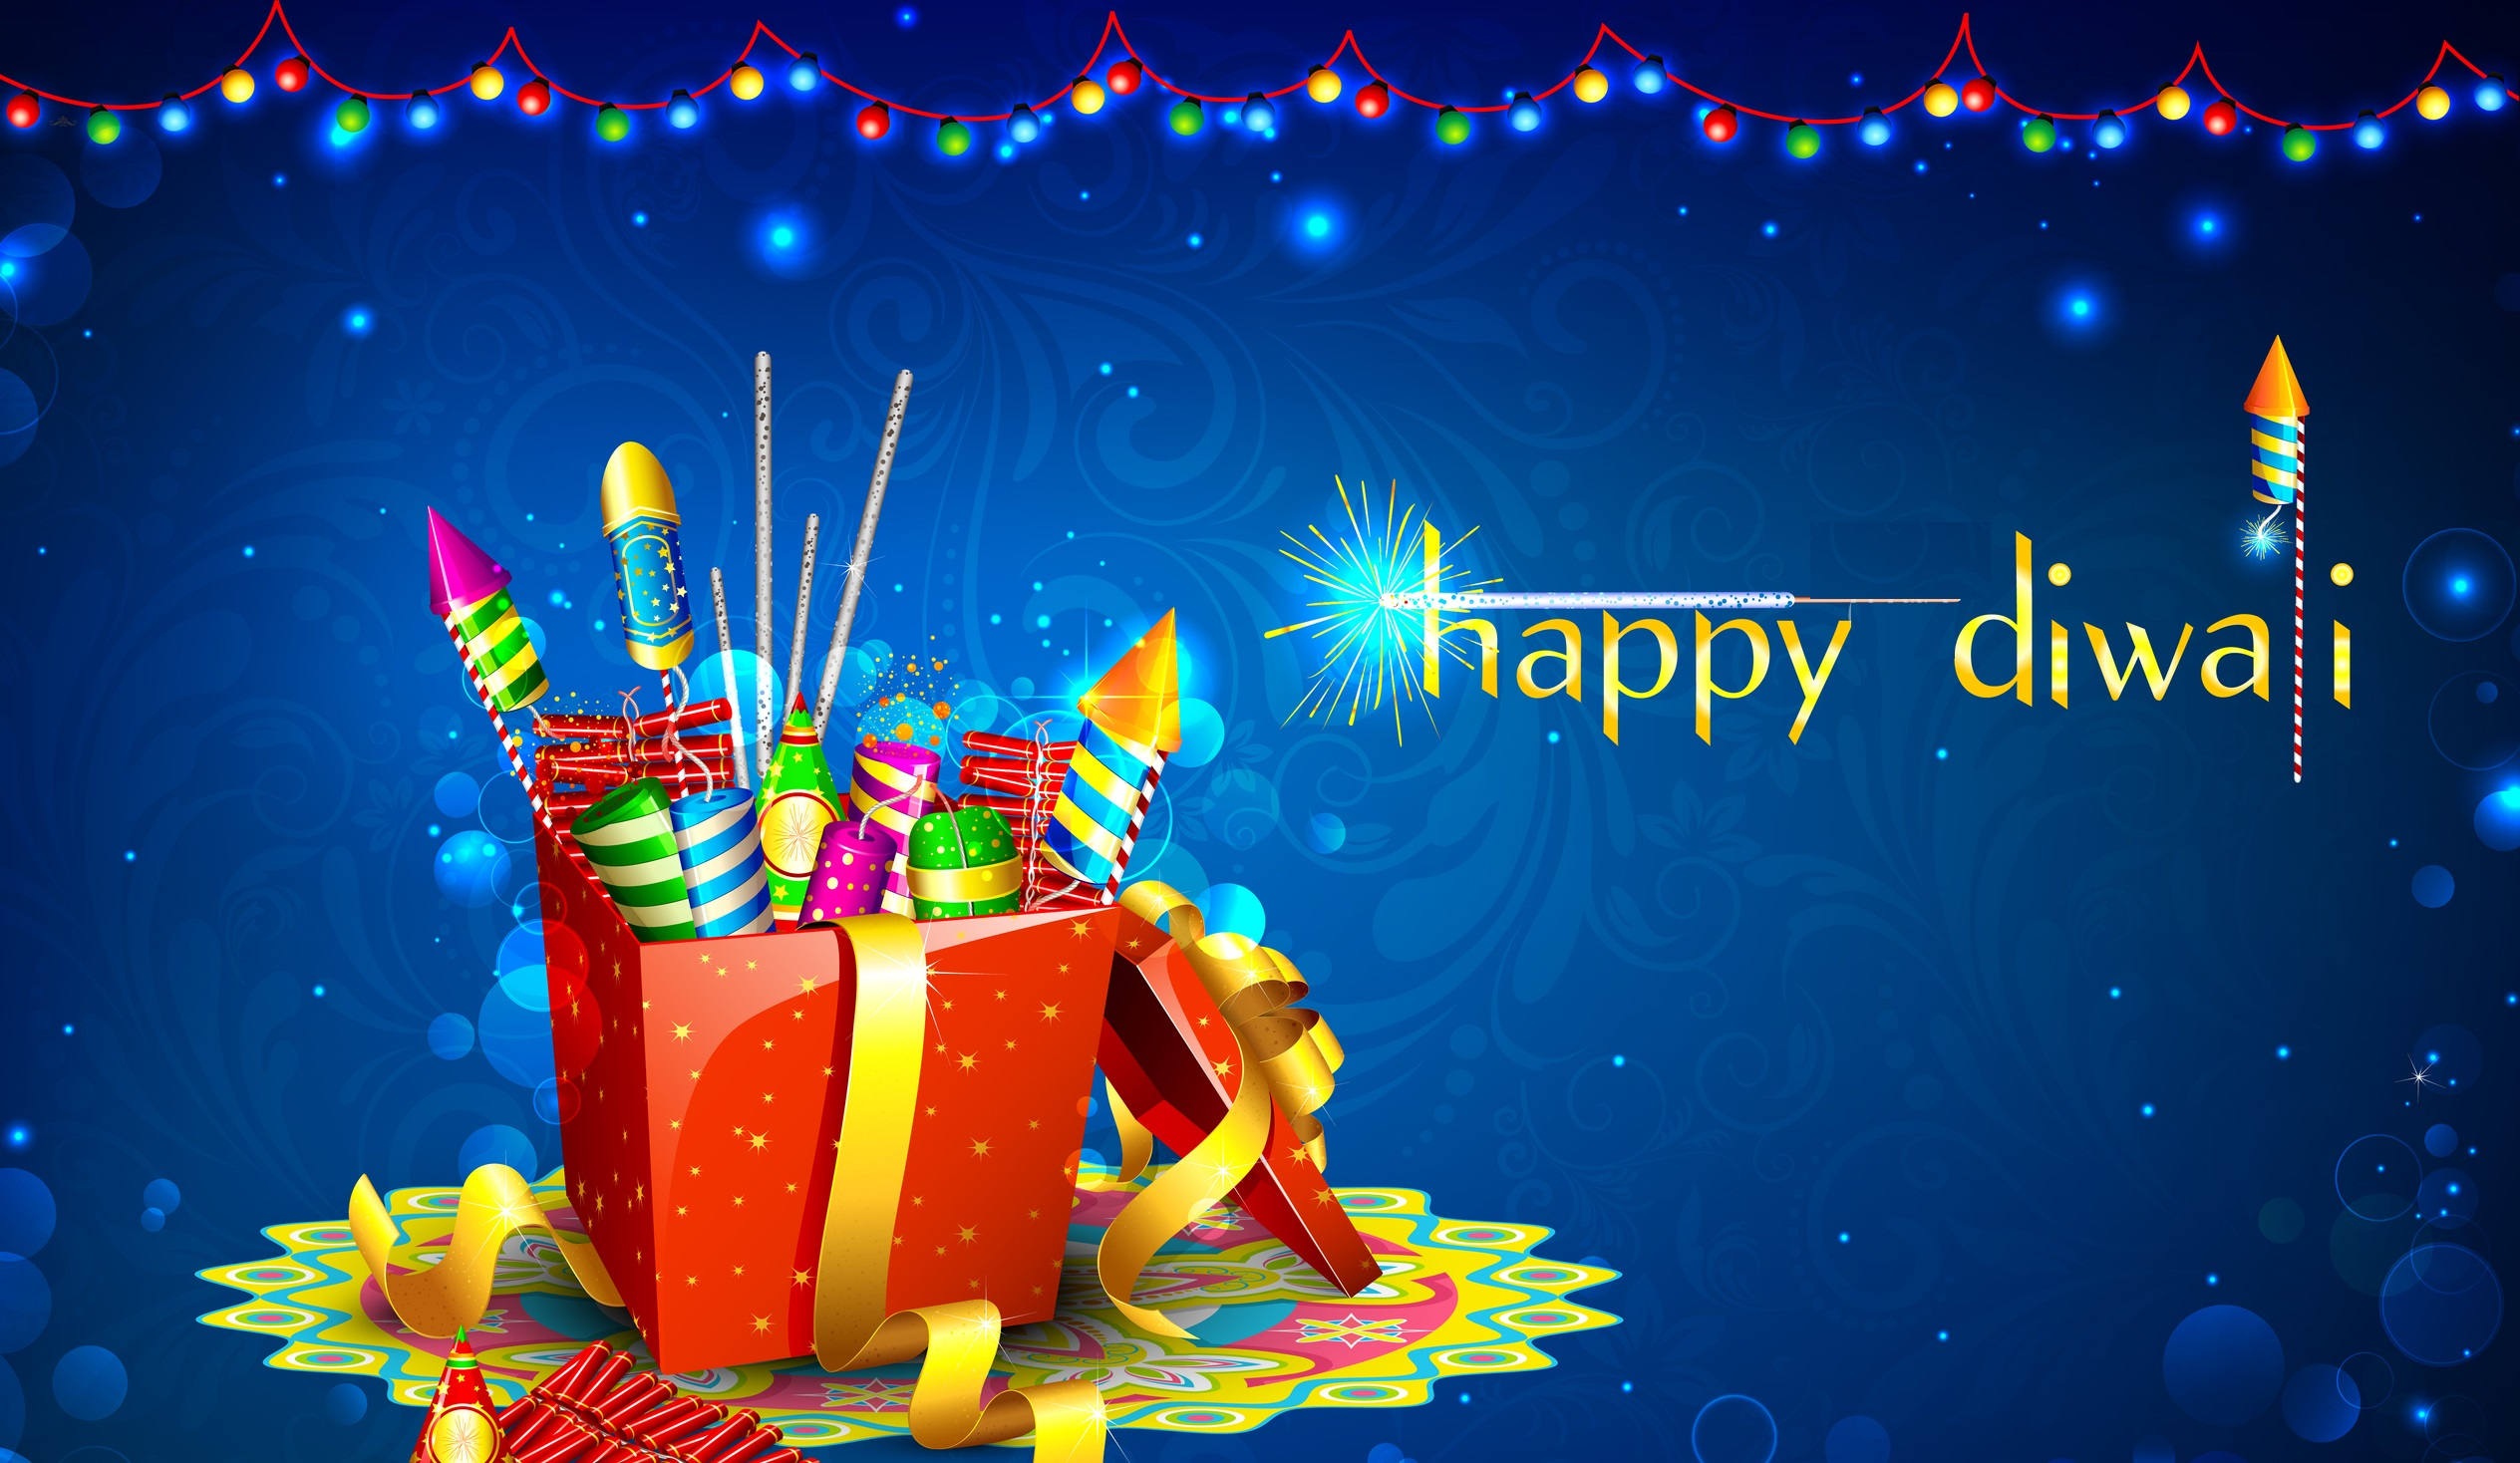 Happy Diwali 2017 Images Photos And Wallpapers Times24by7